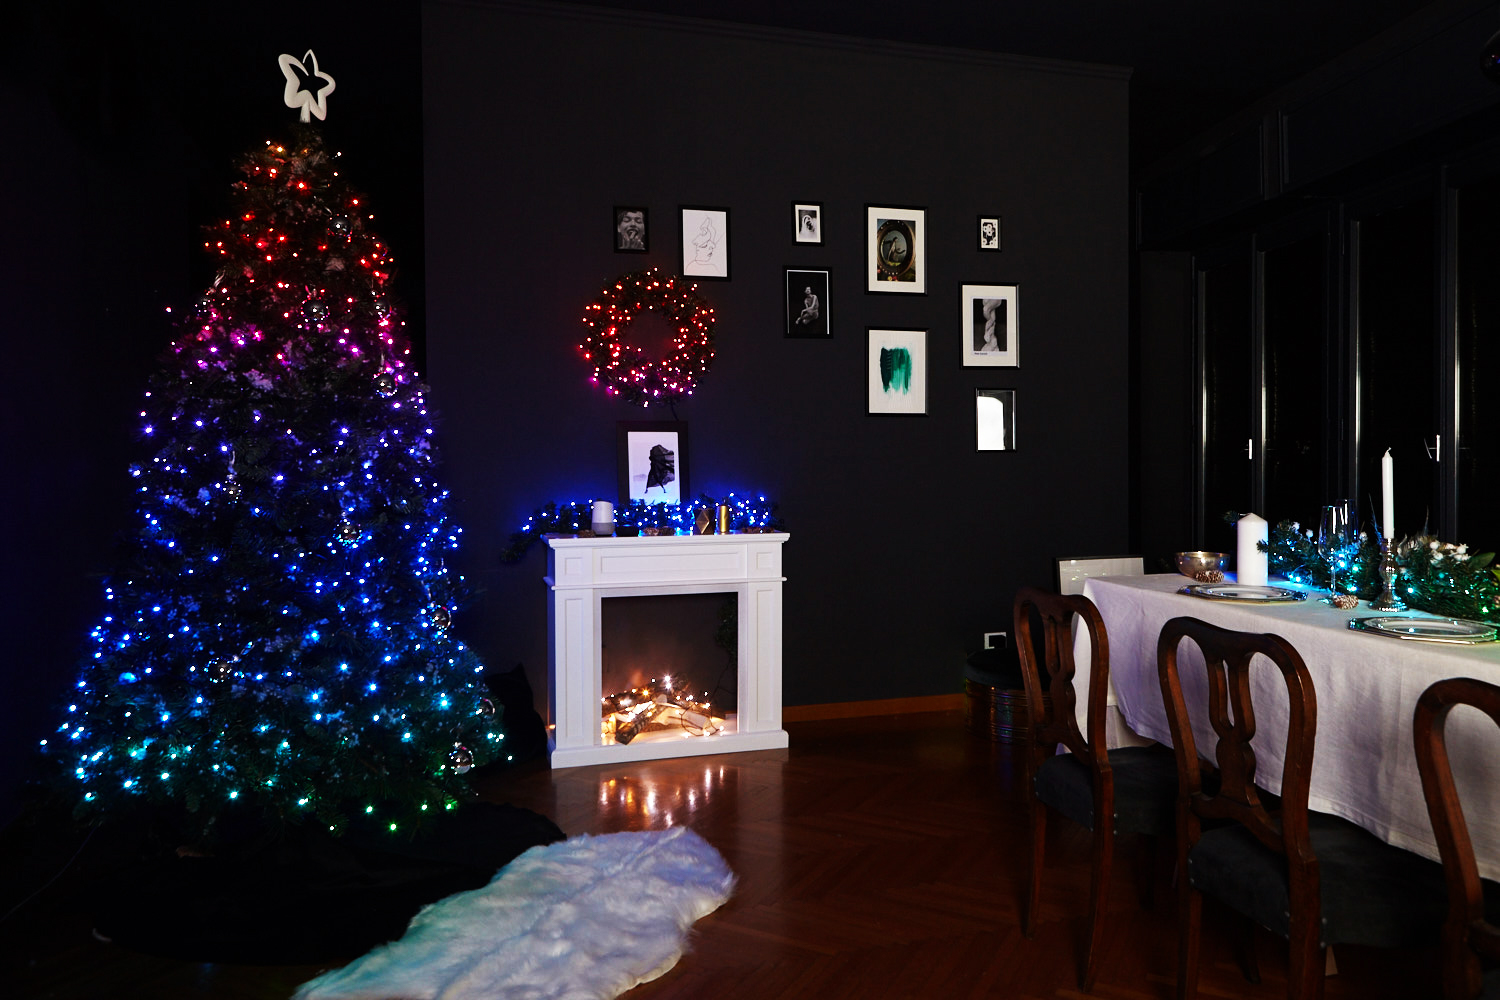 App-Controlled Twinkly RGB Christmas Lights